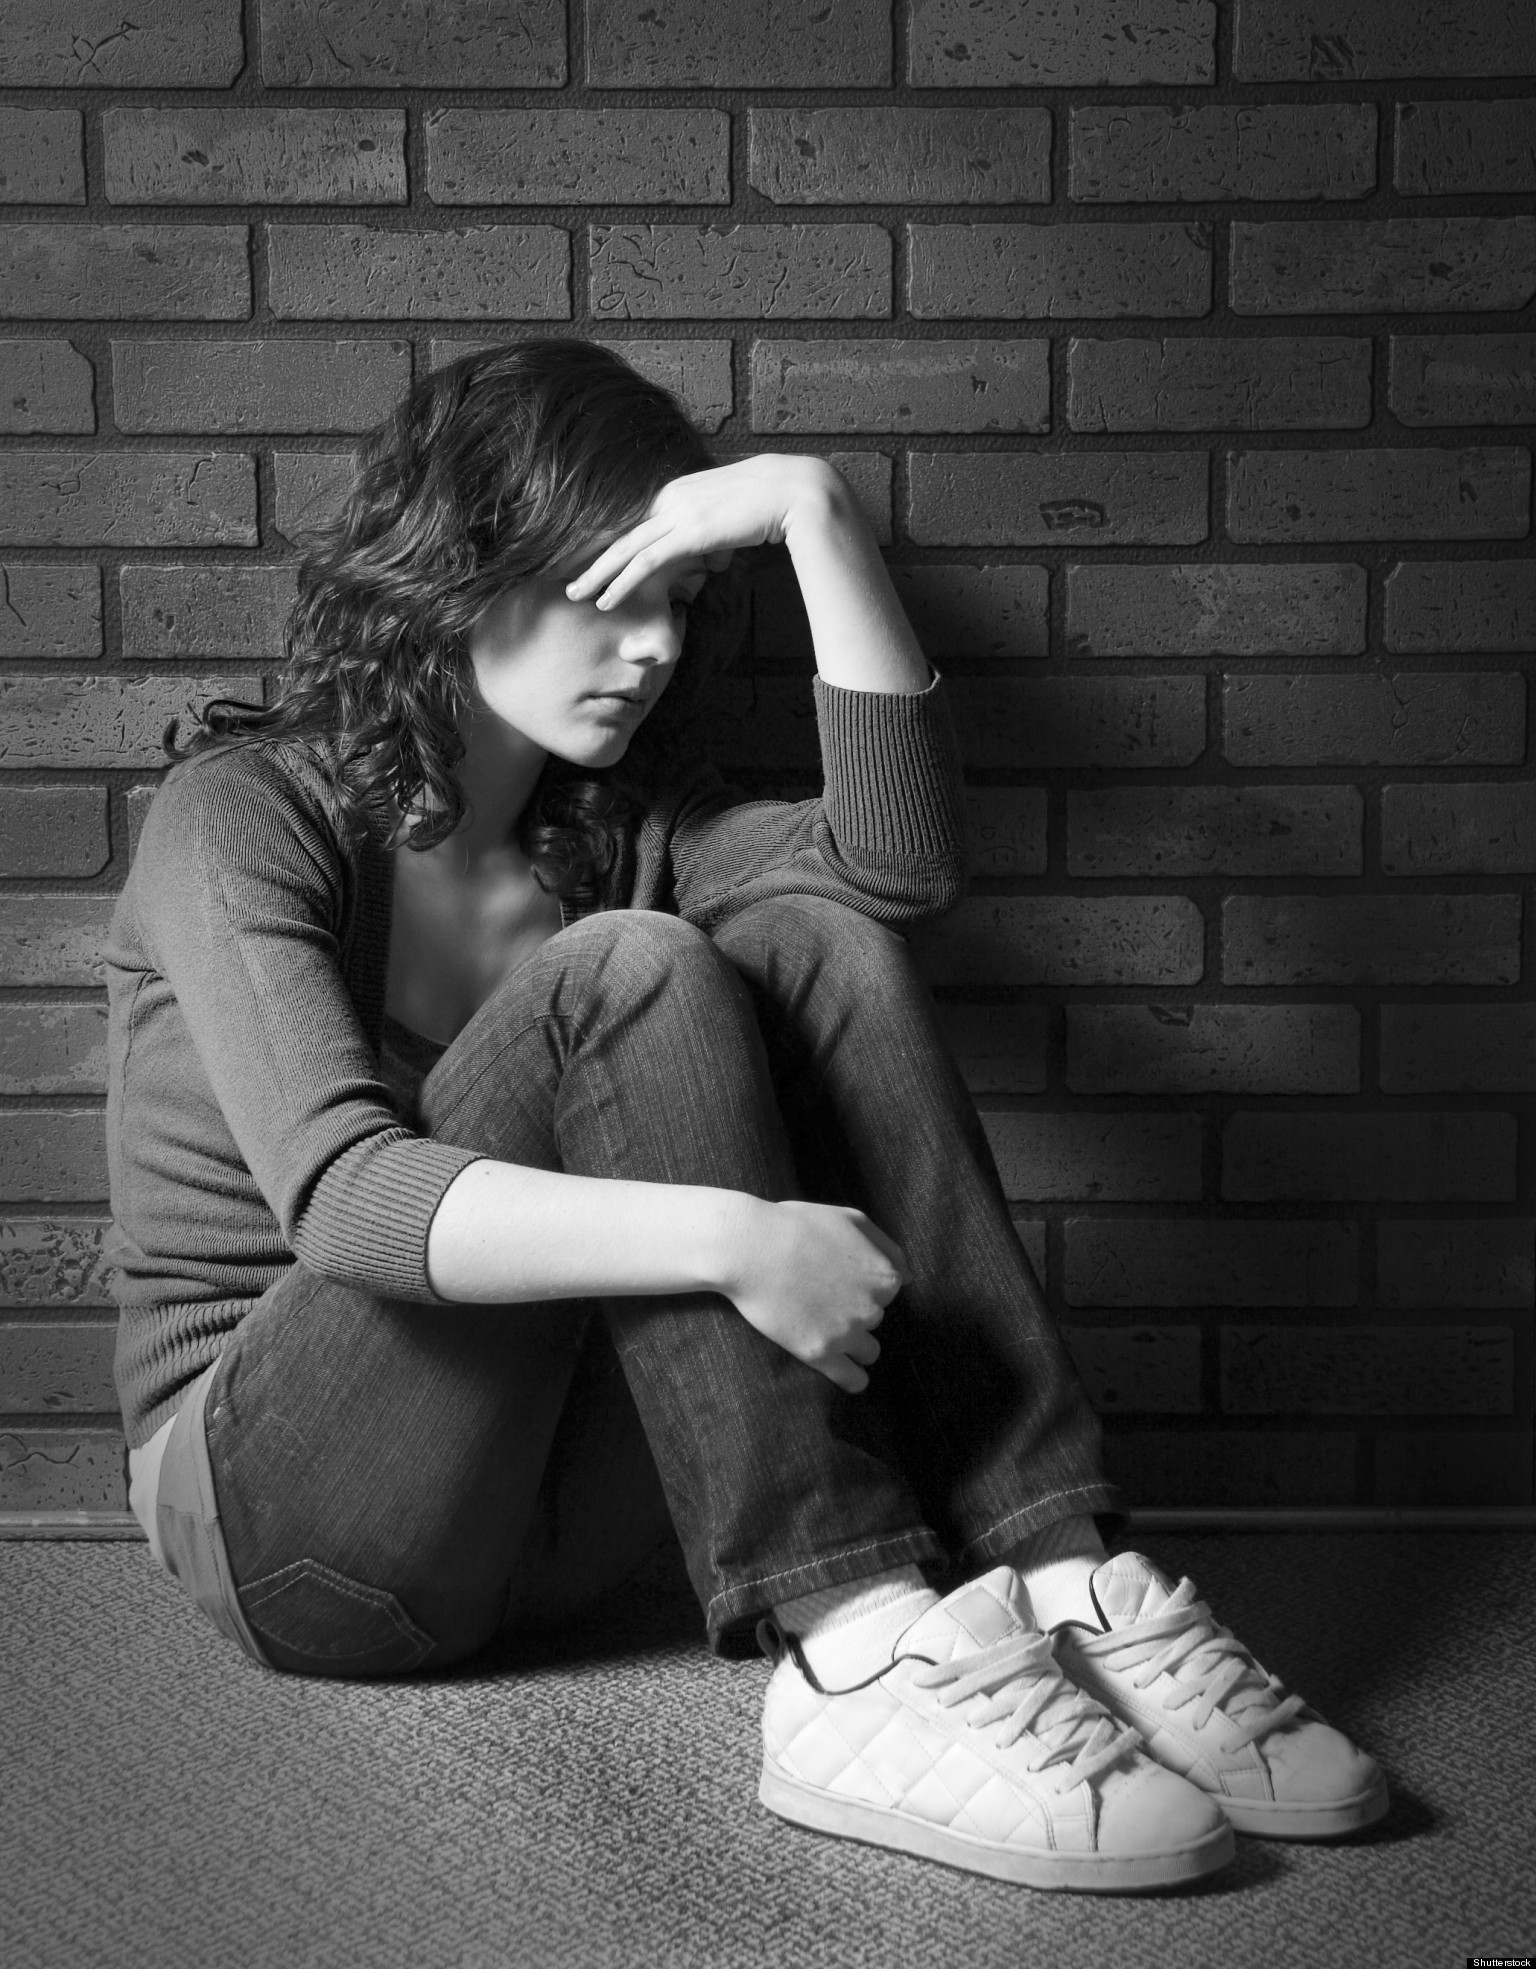 Teen Depression In Girls Linked To Absent Fathers In Early ...